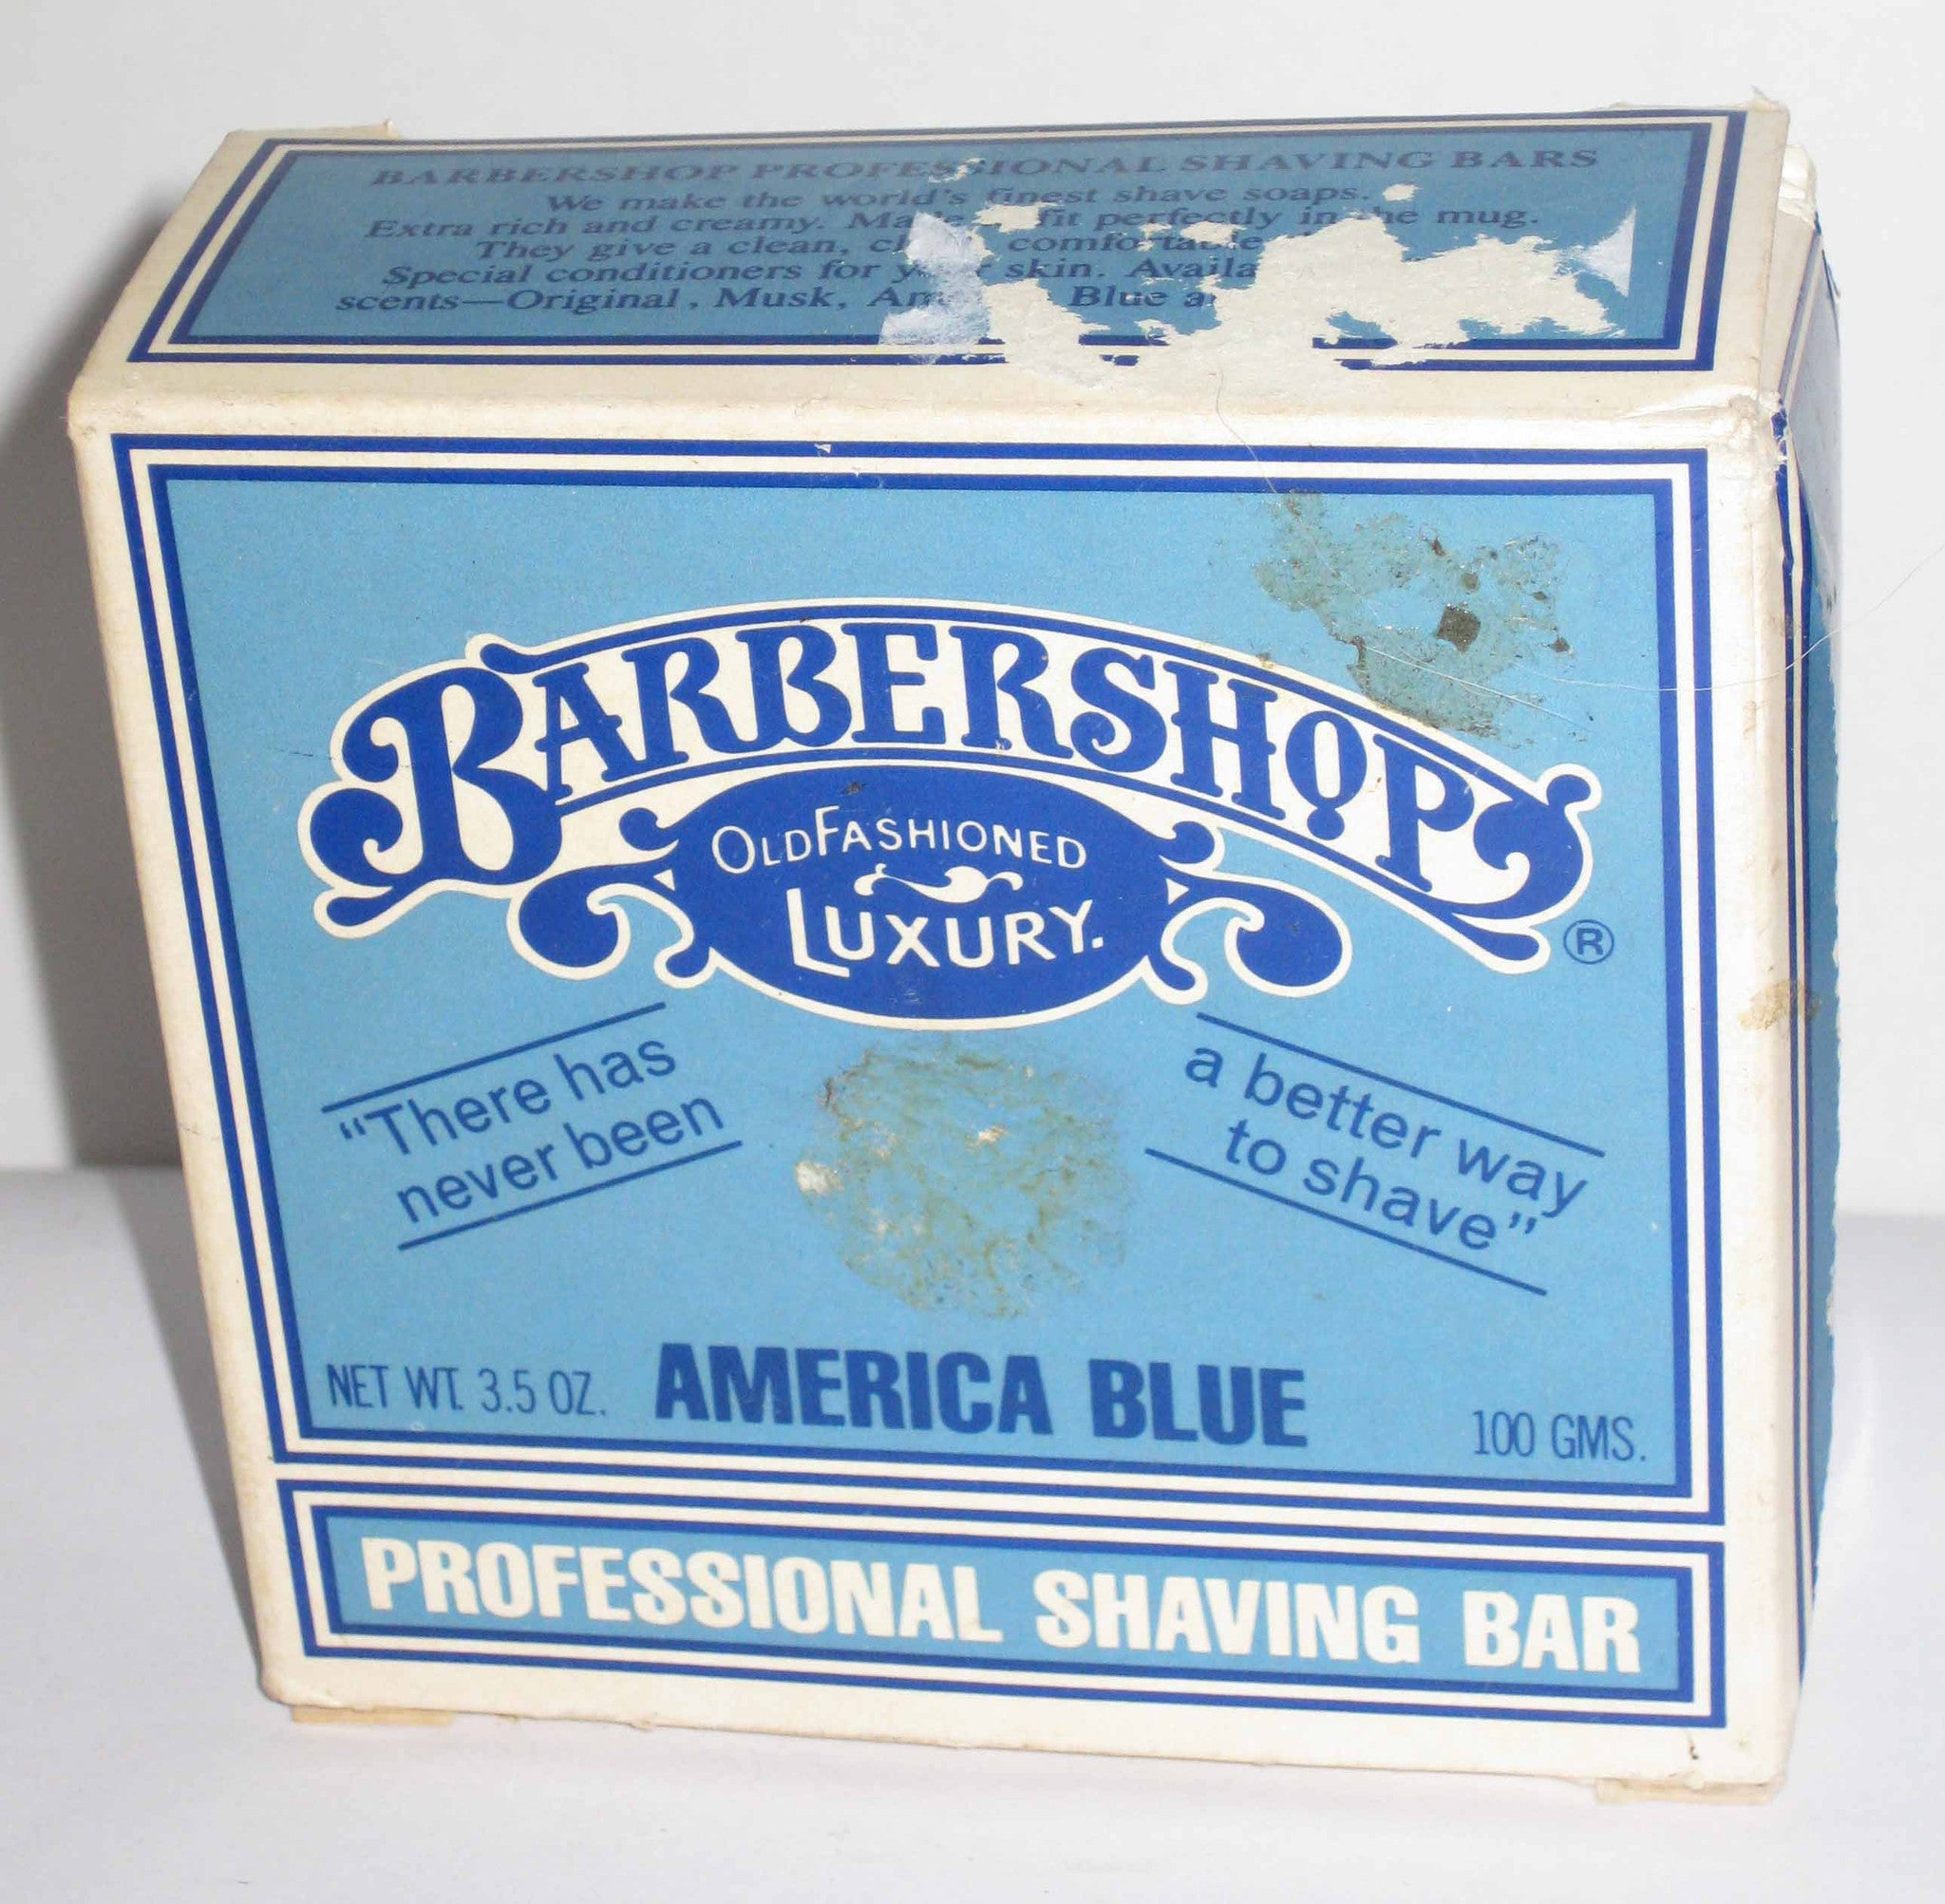 Barbershop Old Fashioned Luxury America Blue Musk Soap